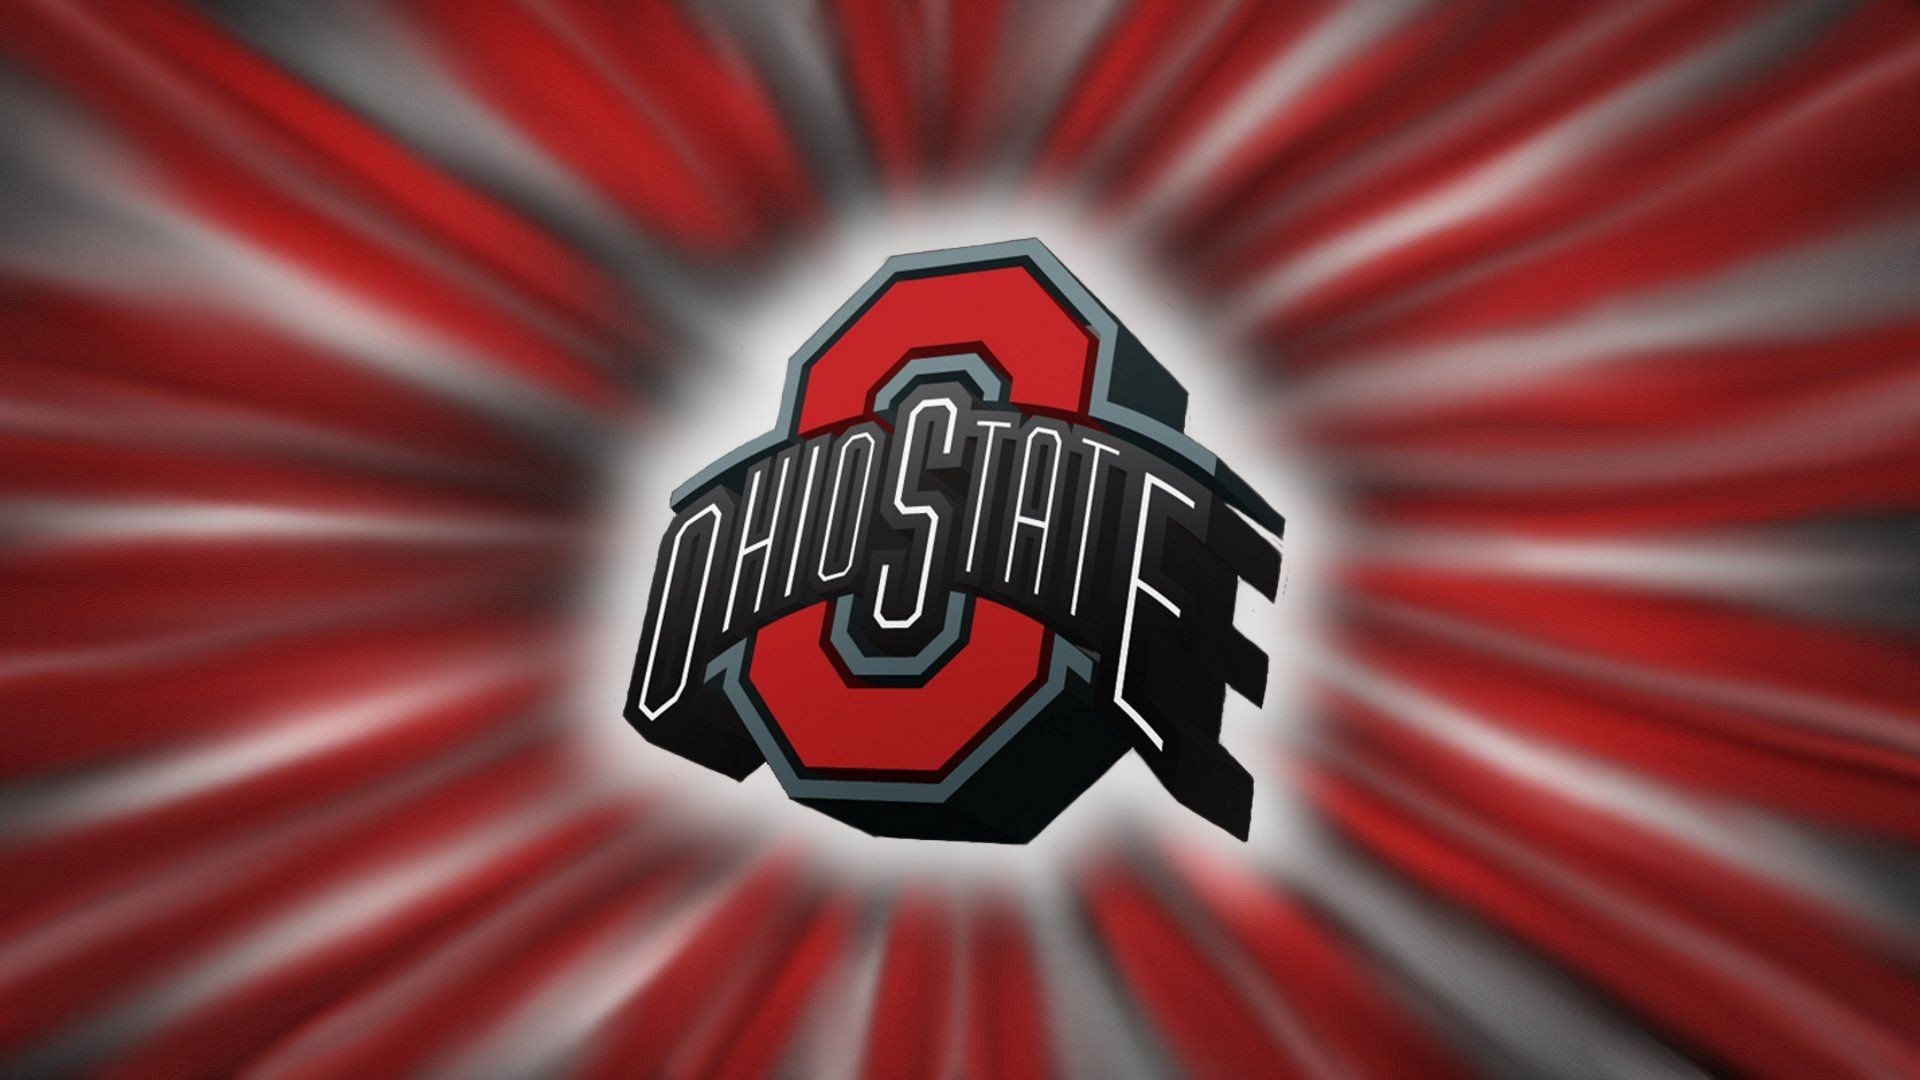 1920x1080  Wide HDQ HD Ohio State Football Wallpapers, Amazing Backgrounds  » M.F. Graphics